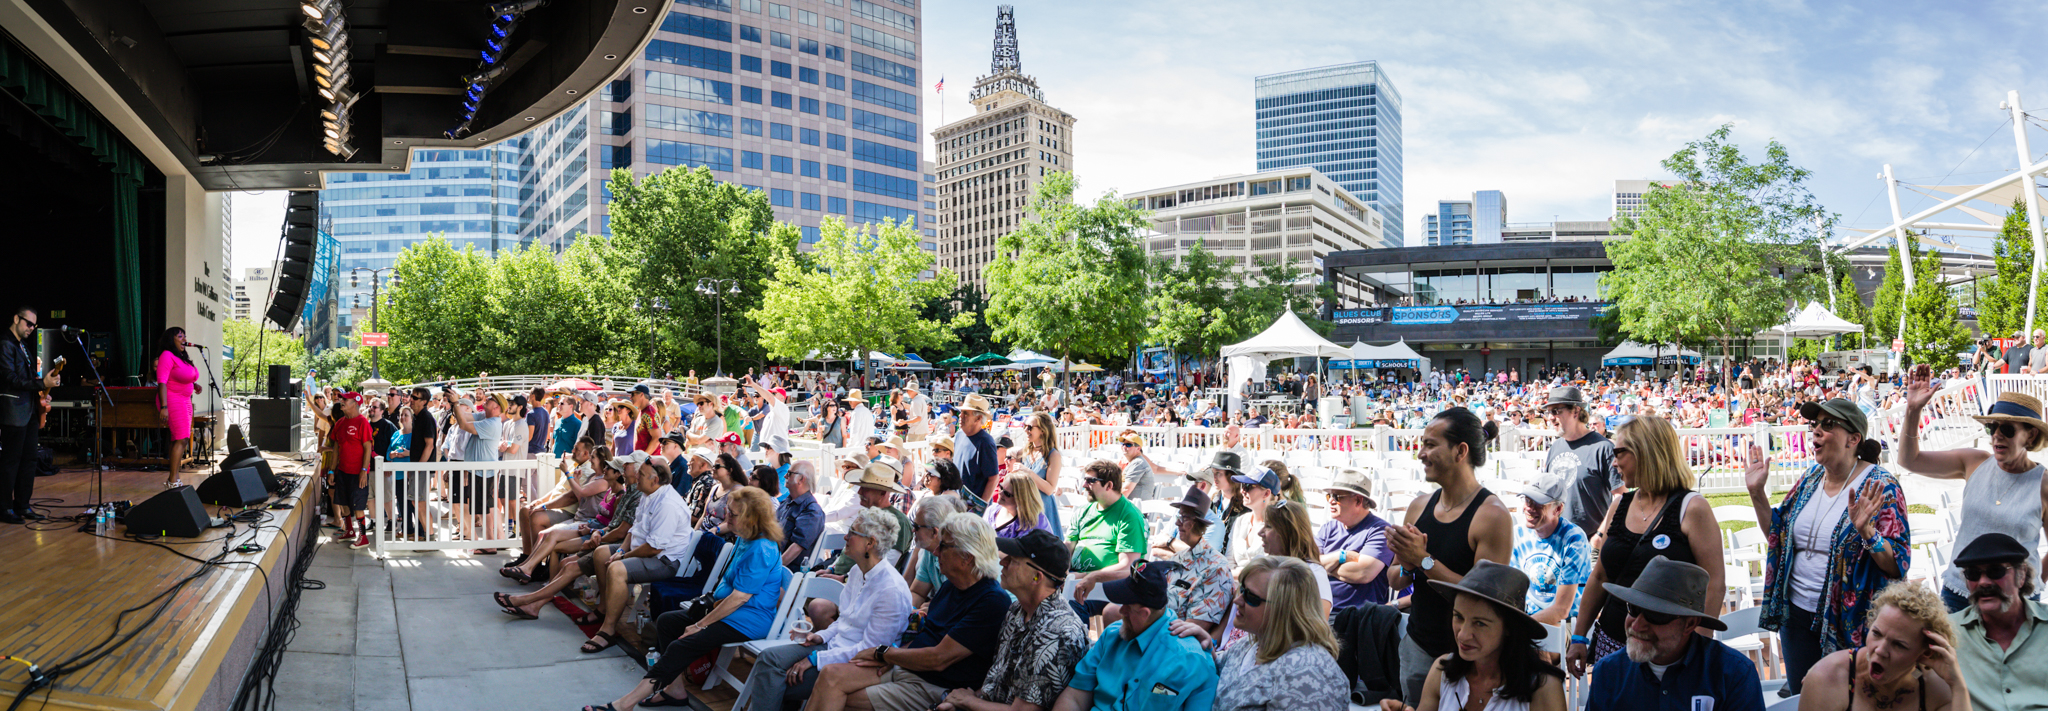 Utah Blues Festival hopes to return in 2021, along with other Utah summer events.